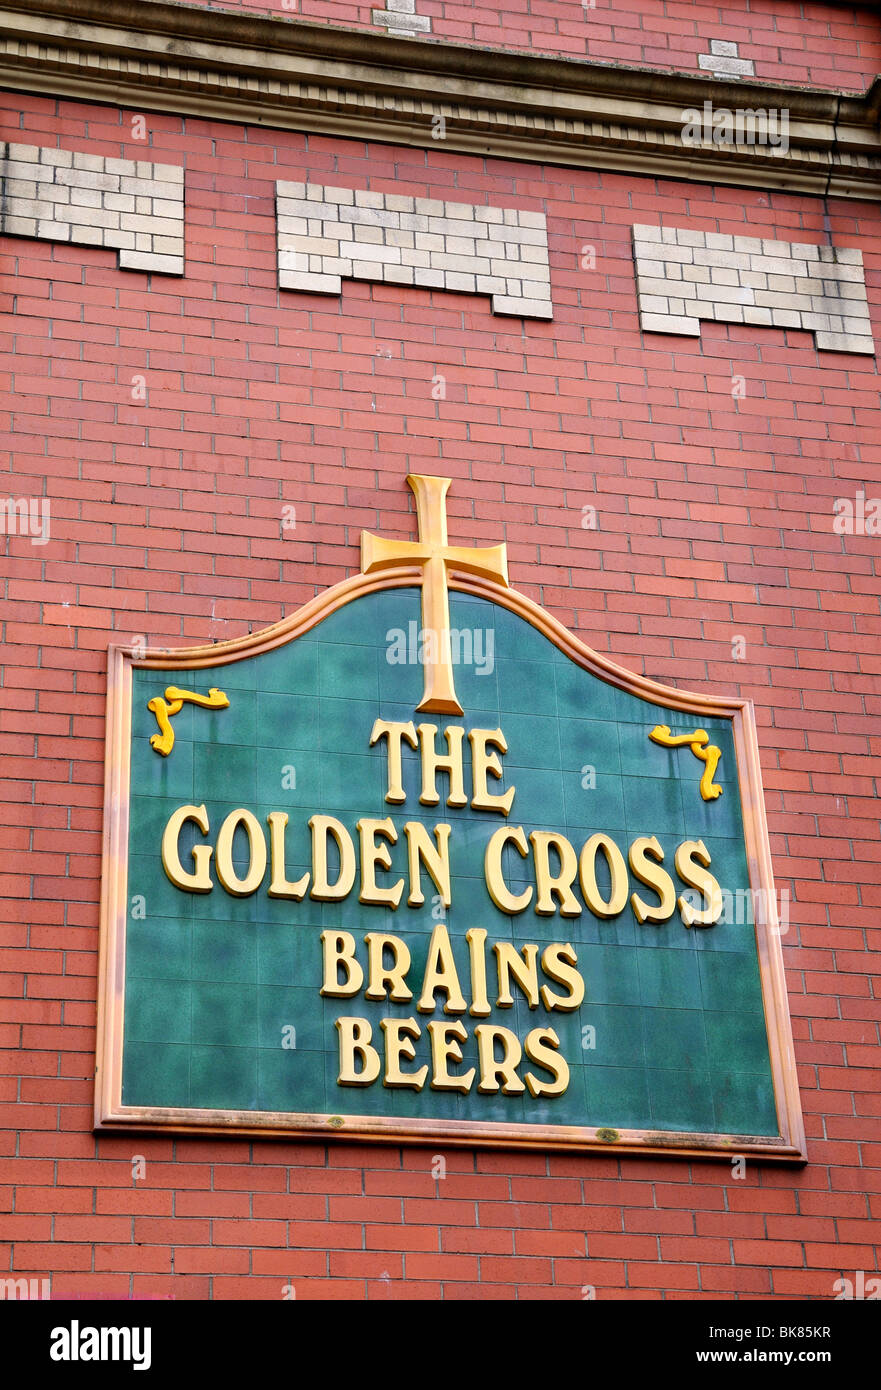 Old  logo for Brains beer on The Golden Cross public house Cardiff - Stock Image